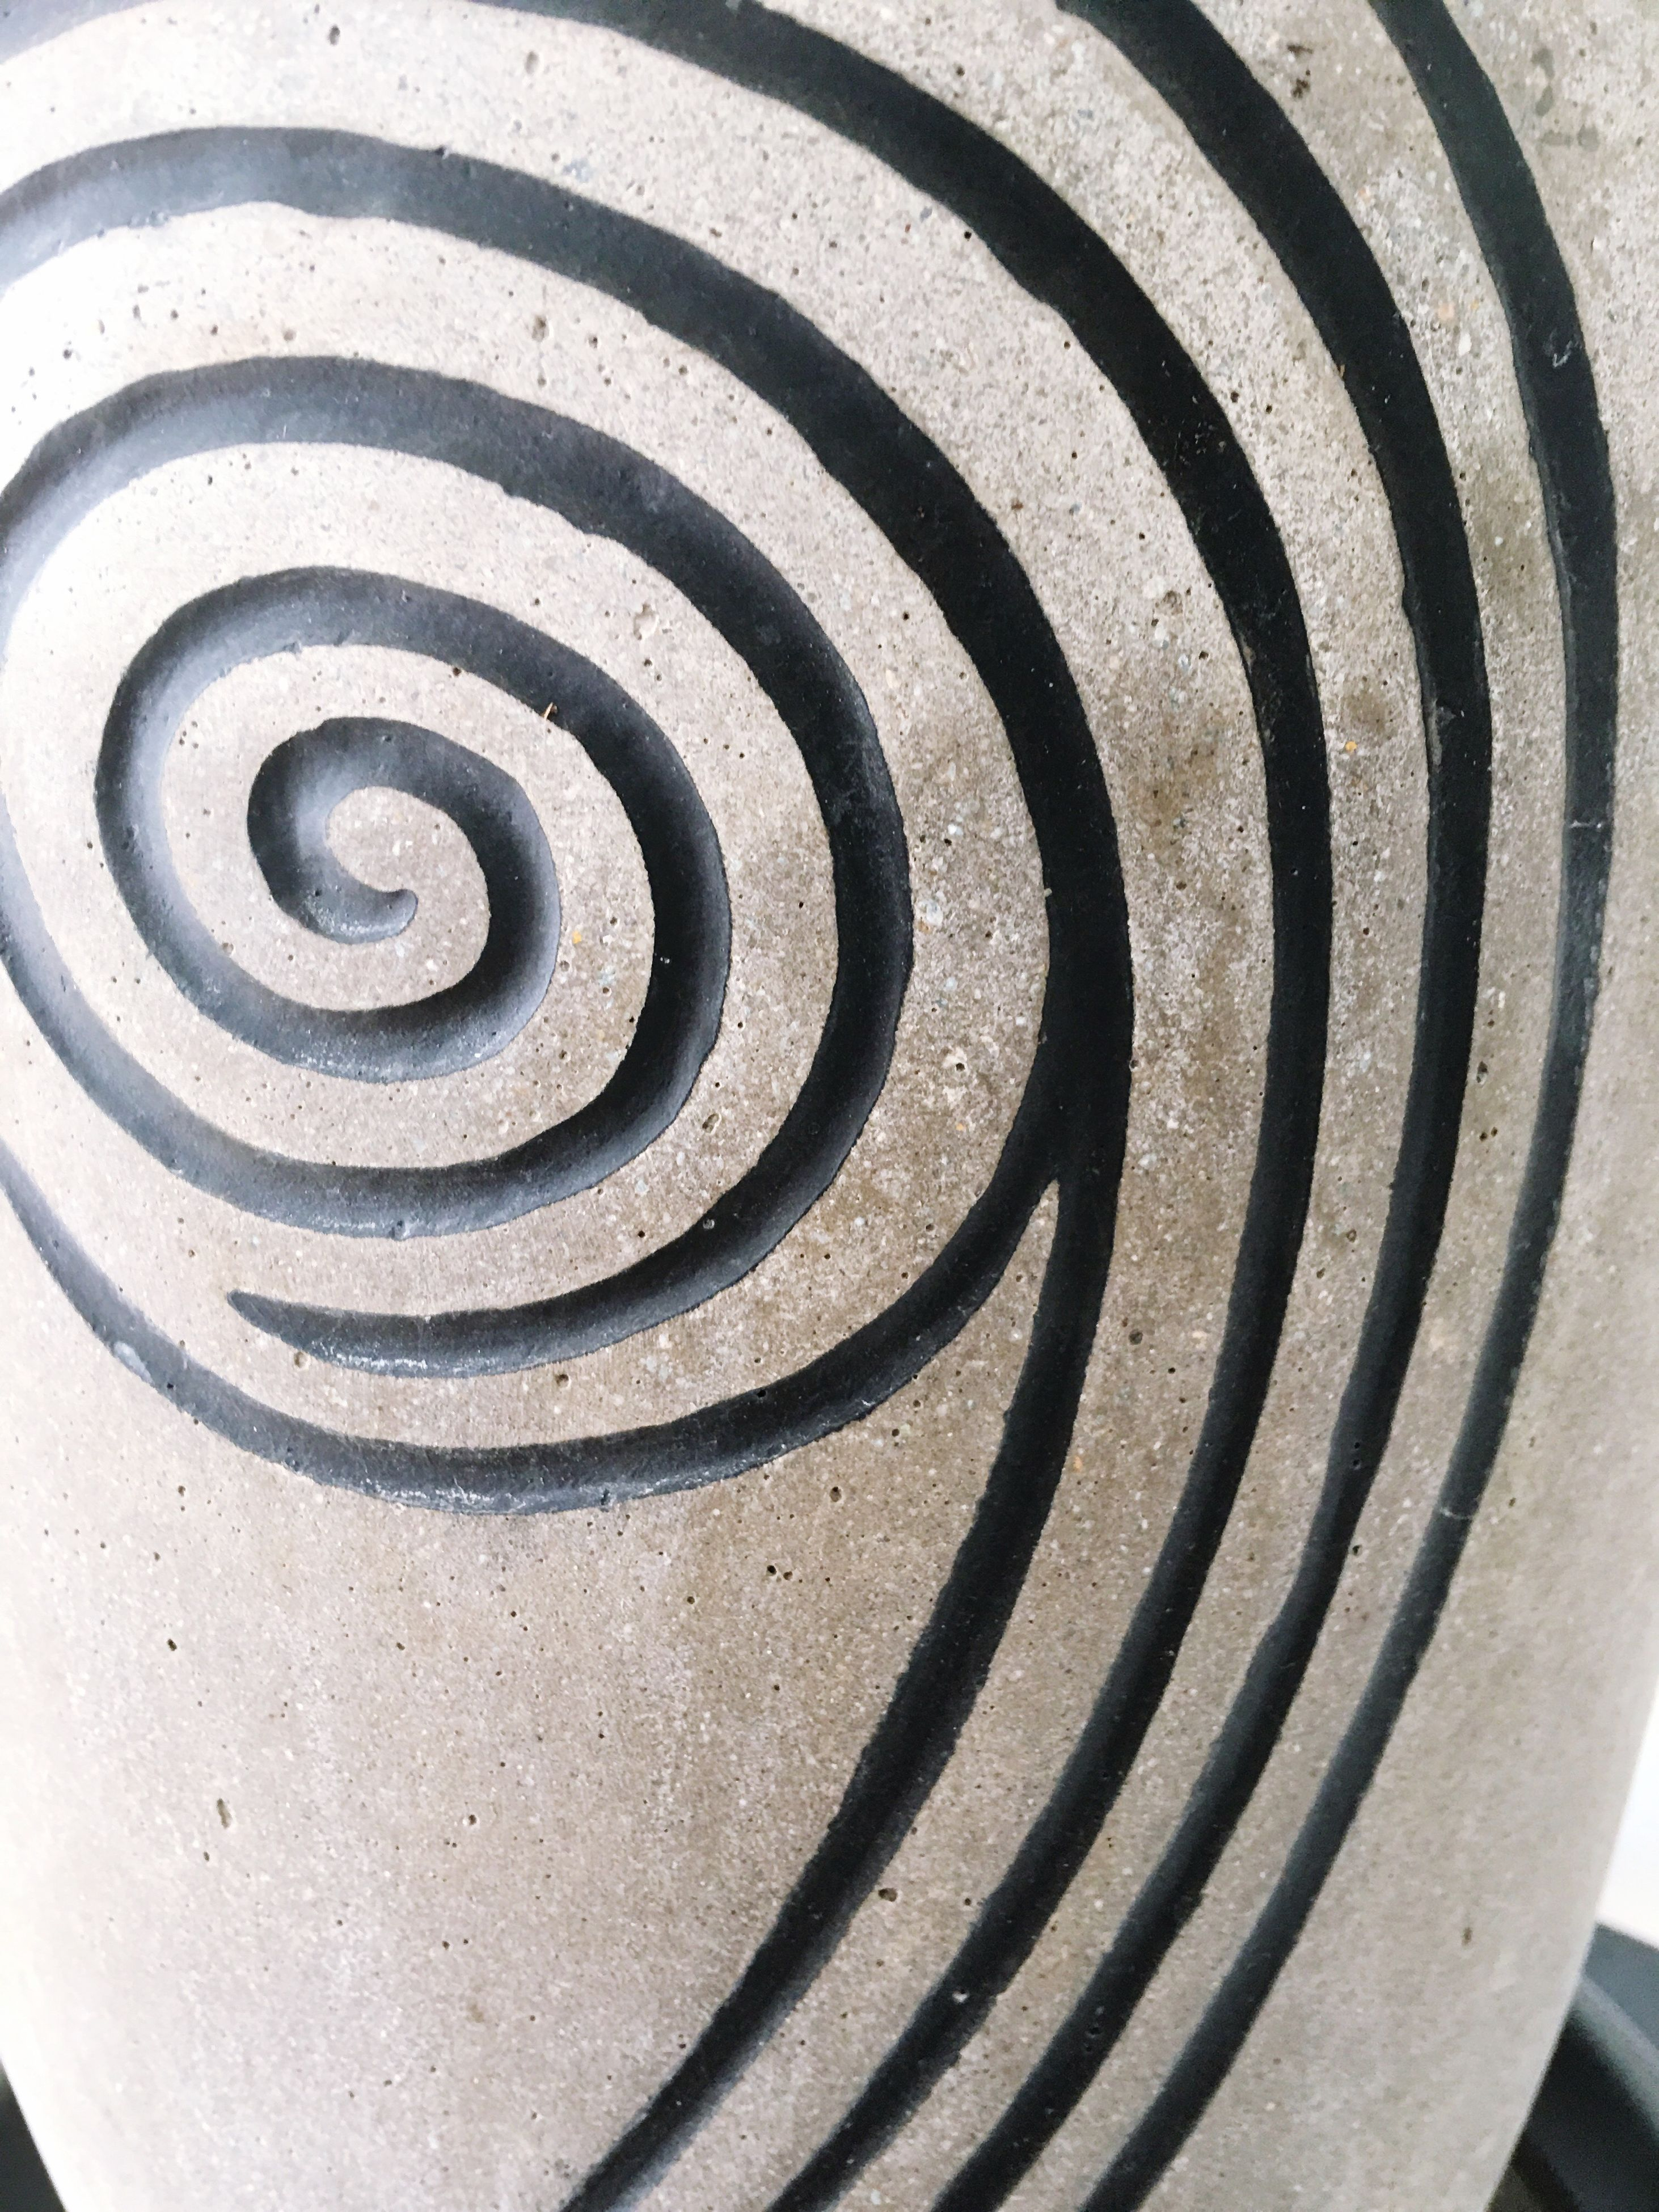 concentric, spiral, pattern, abstract, architecture, backgrounds, close-up, no people, indoors, day